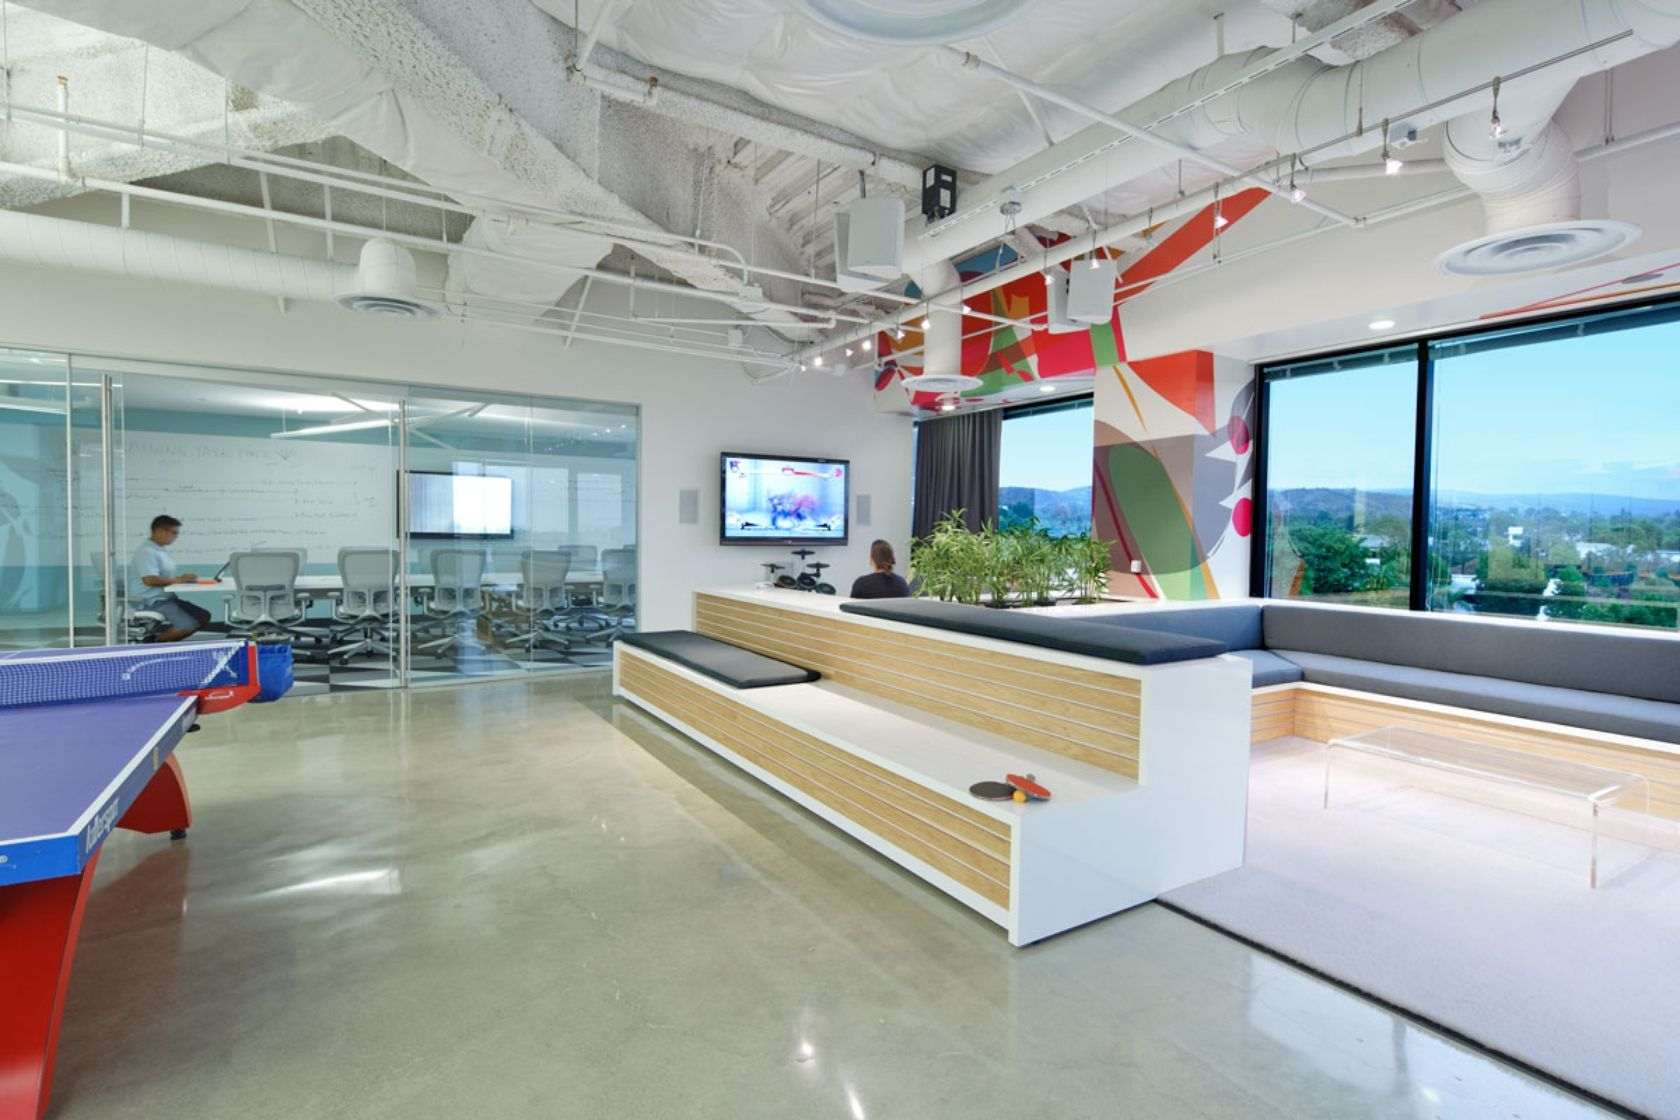 Kitchen social area use of space creative office space office space design